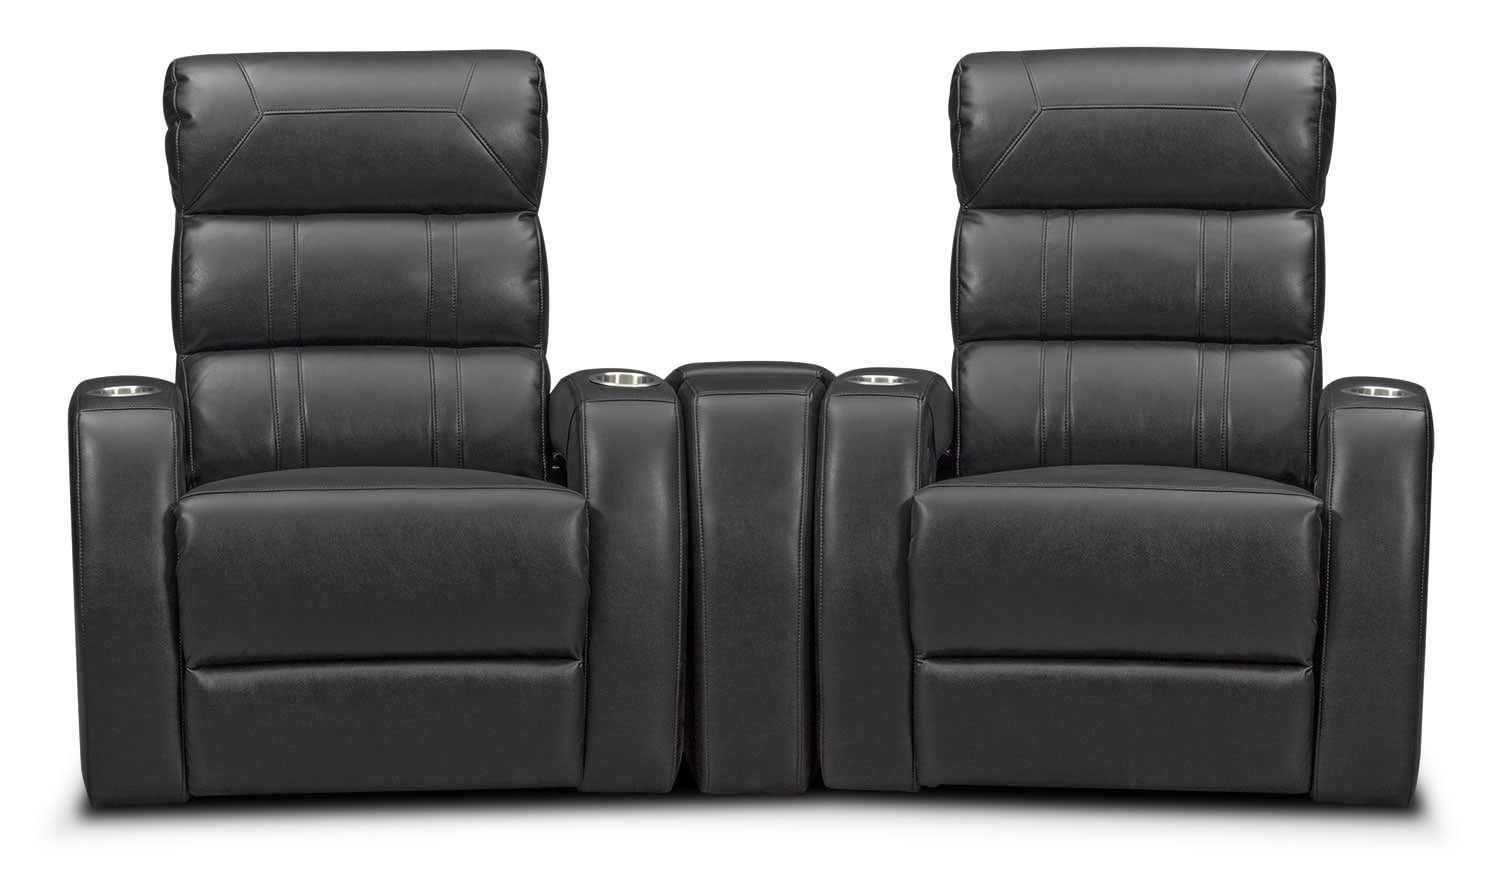 Living Room Furniture   Bravo 3 Piece Power Reclining Home Theater Sectional